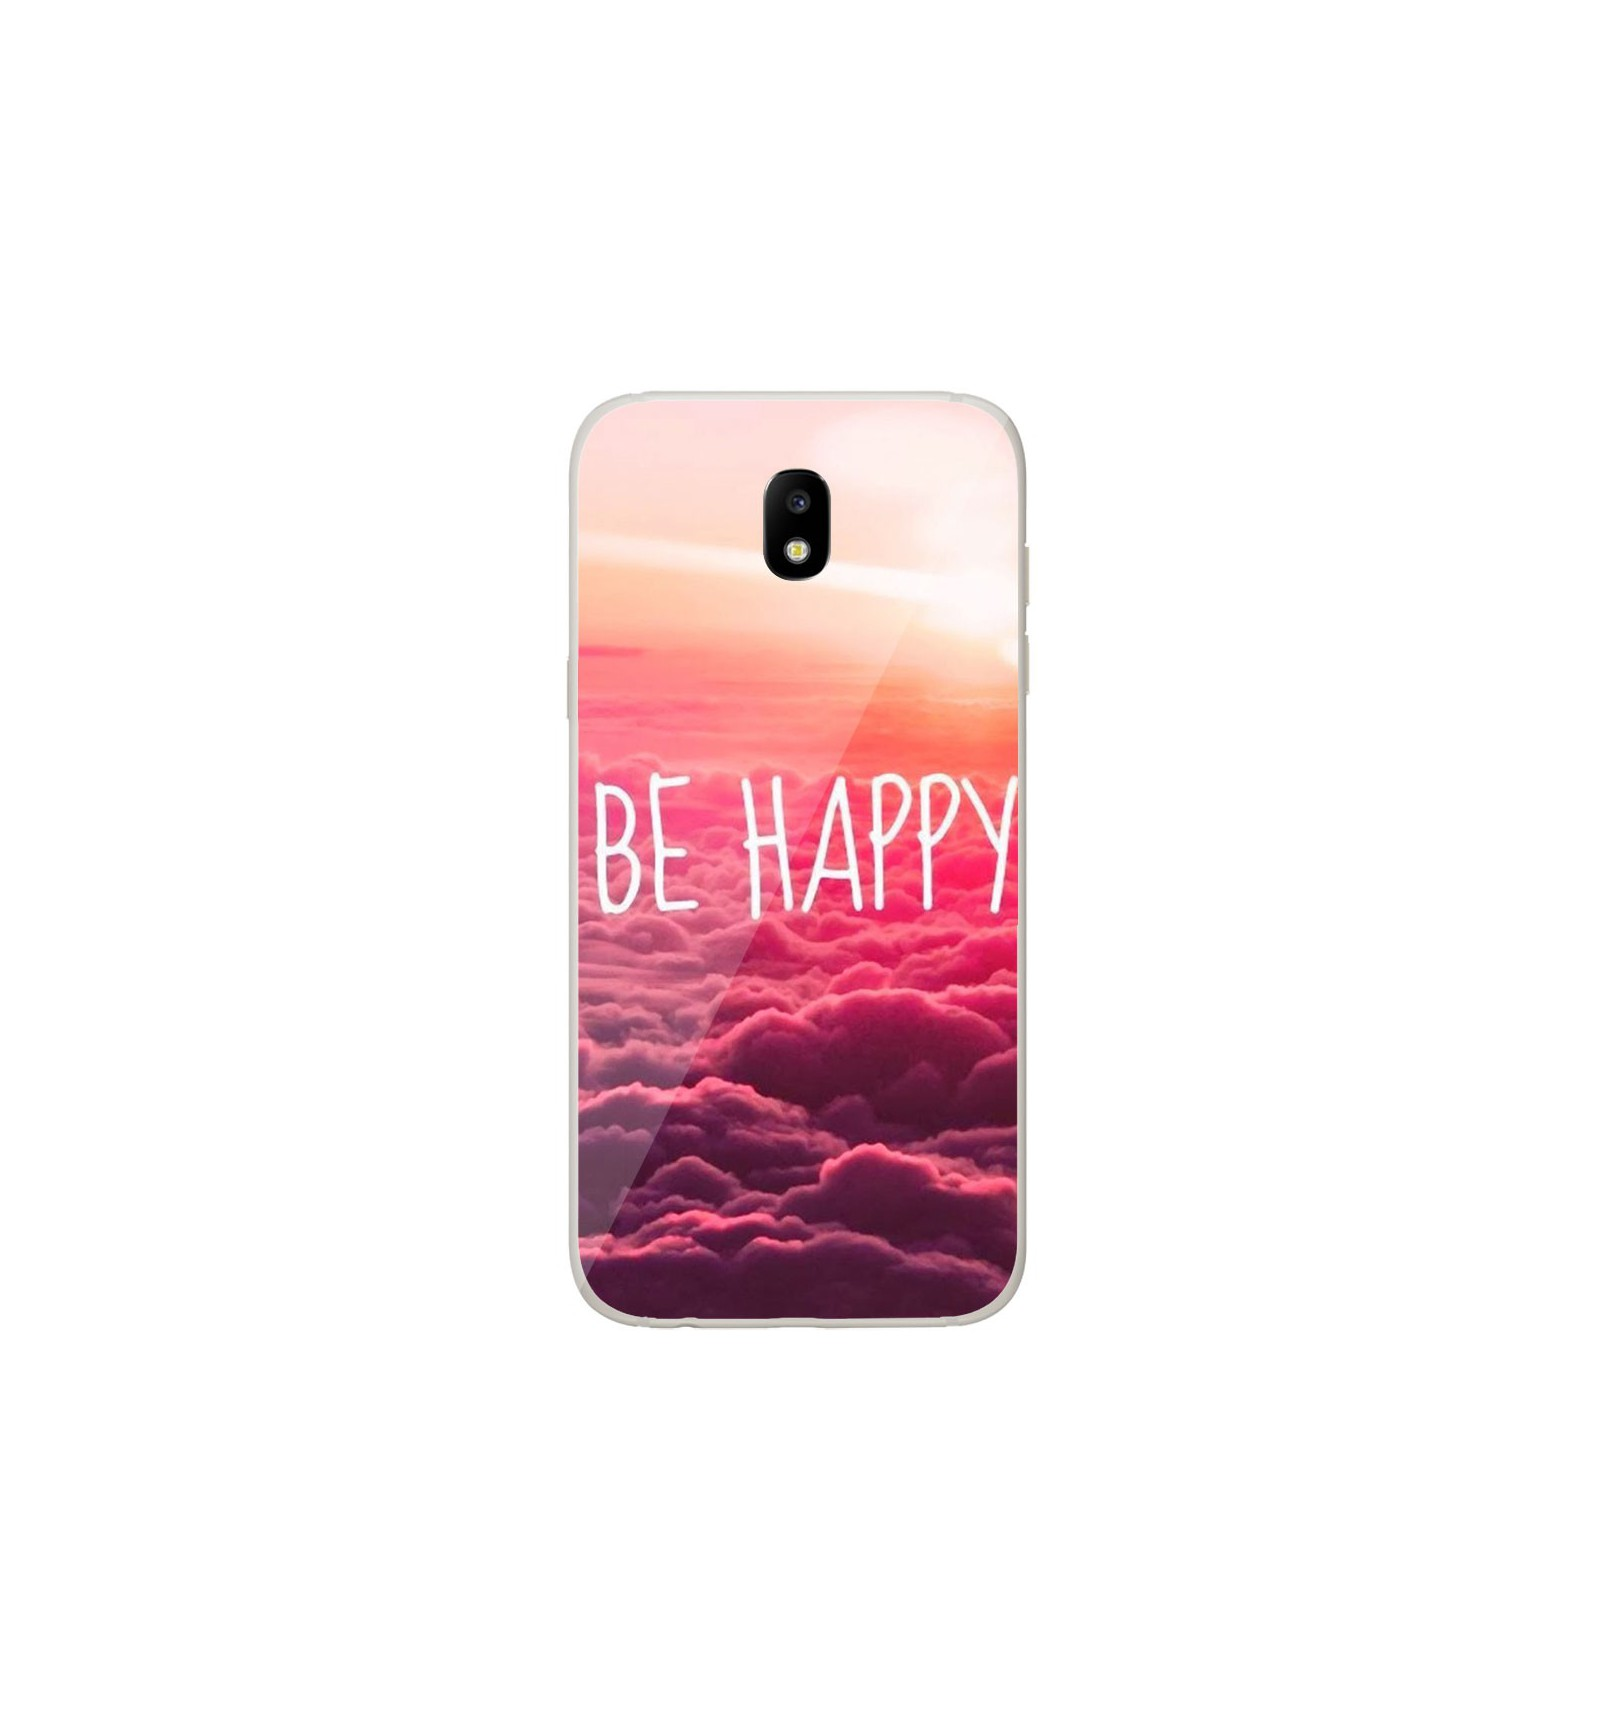 coque en silicone samsung galaxy j7 2017 be happy nuage. Black Bedroom Furniture Sets. Home Design Ideas